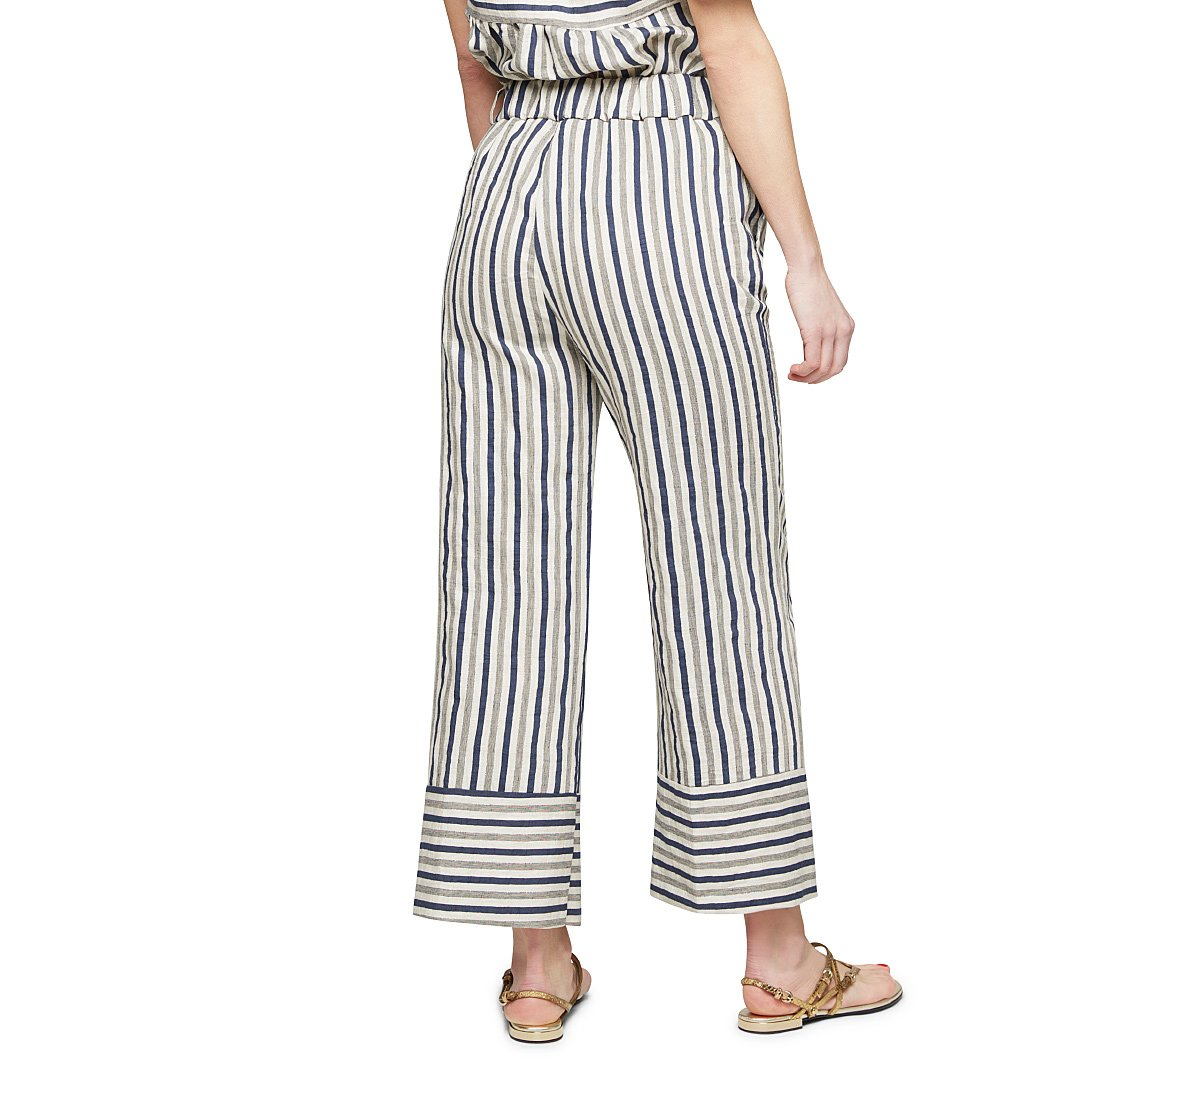 High-waisted trousers with nautical style